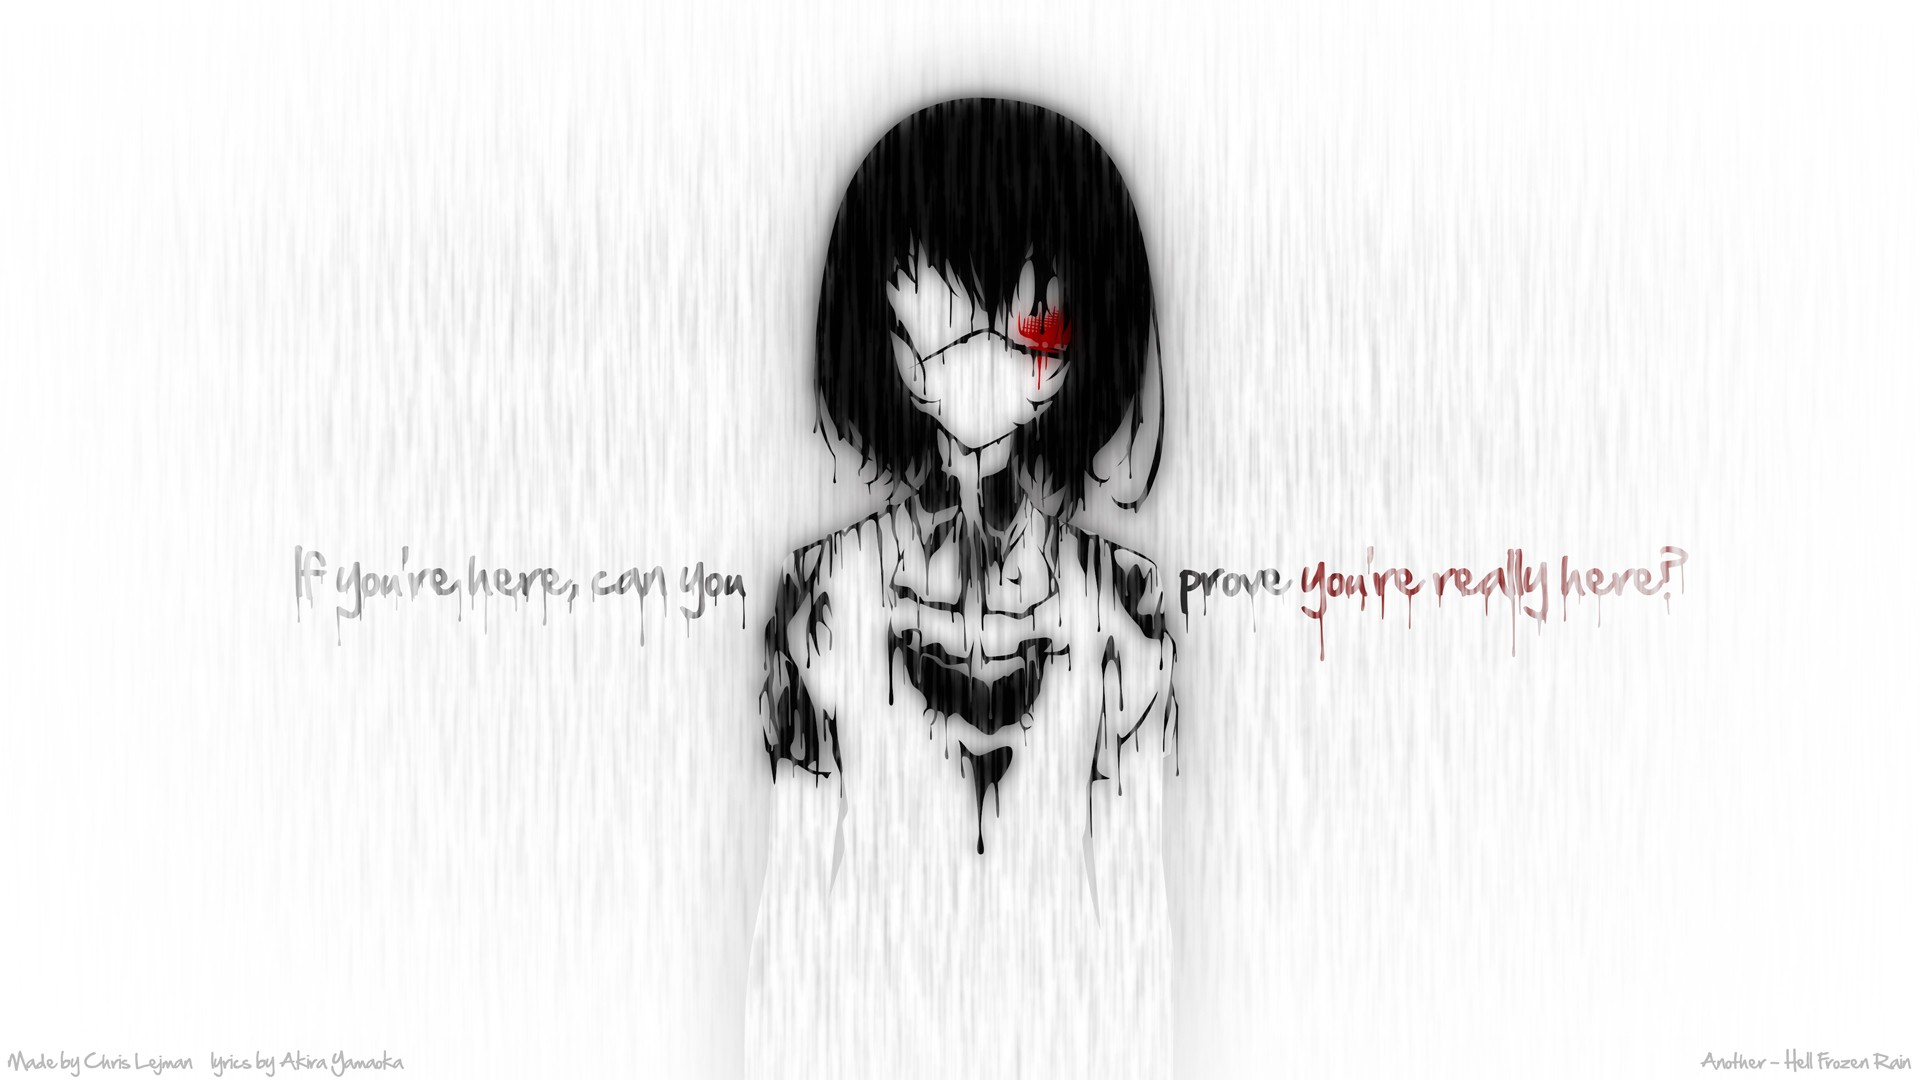 Anime 1920x1080 Another Misaki Mei anime girls anime typography